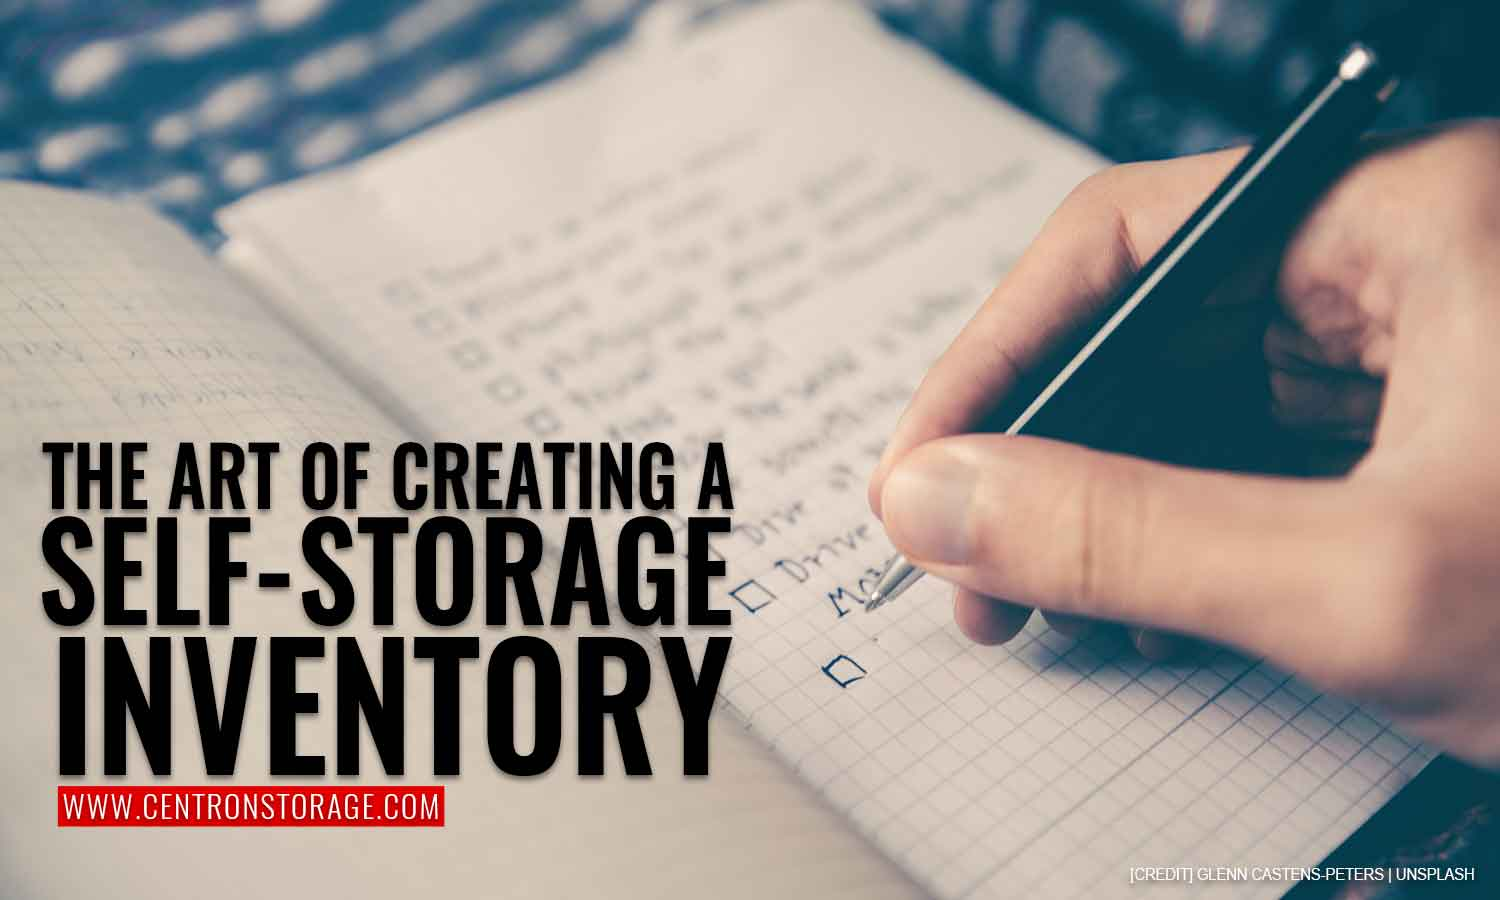 The Art of Creating a Self-Storage Inventory